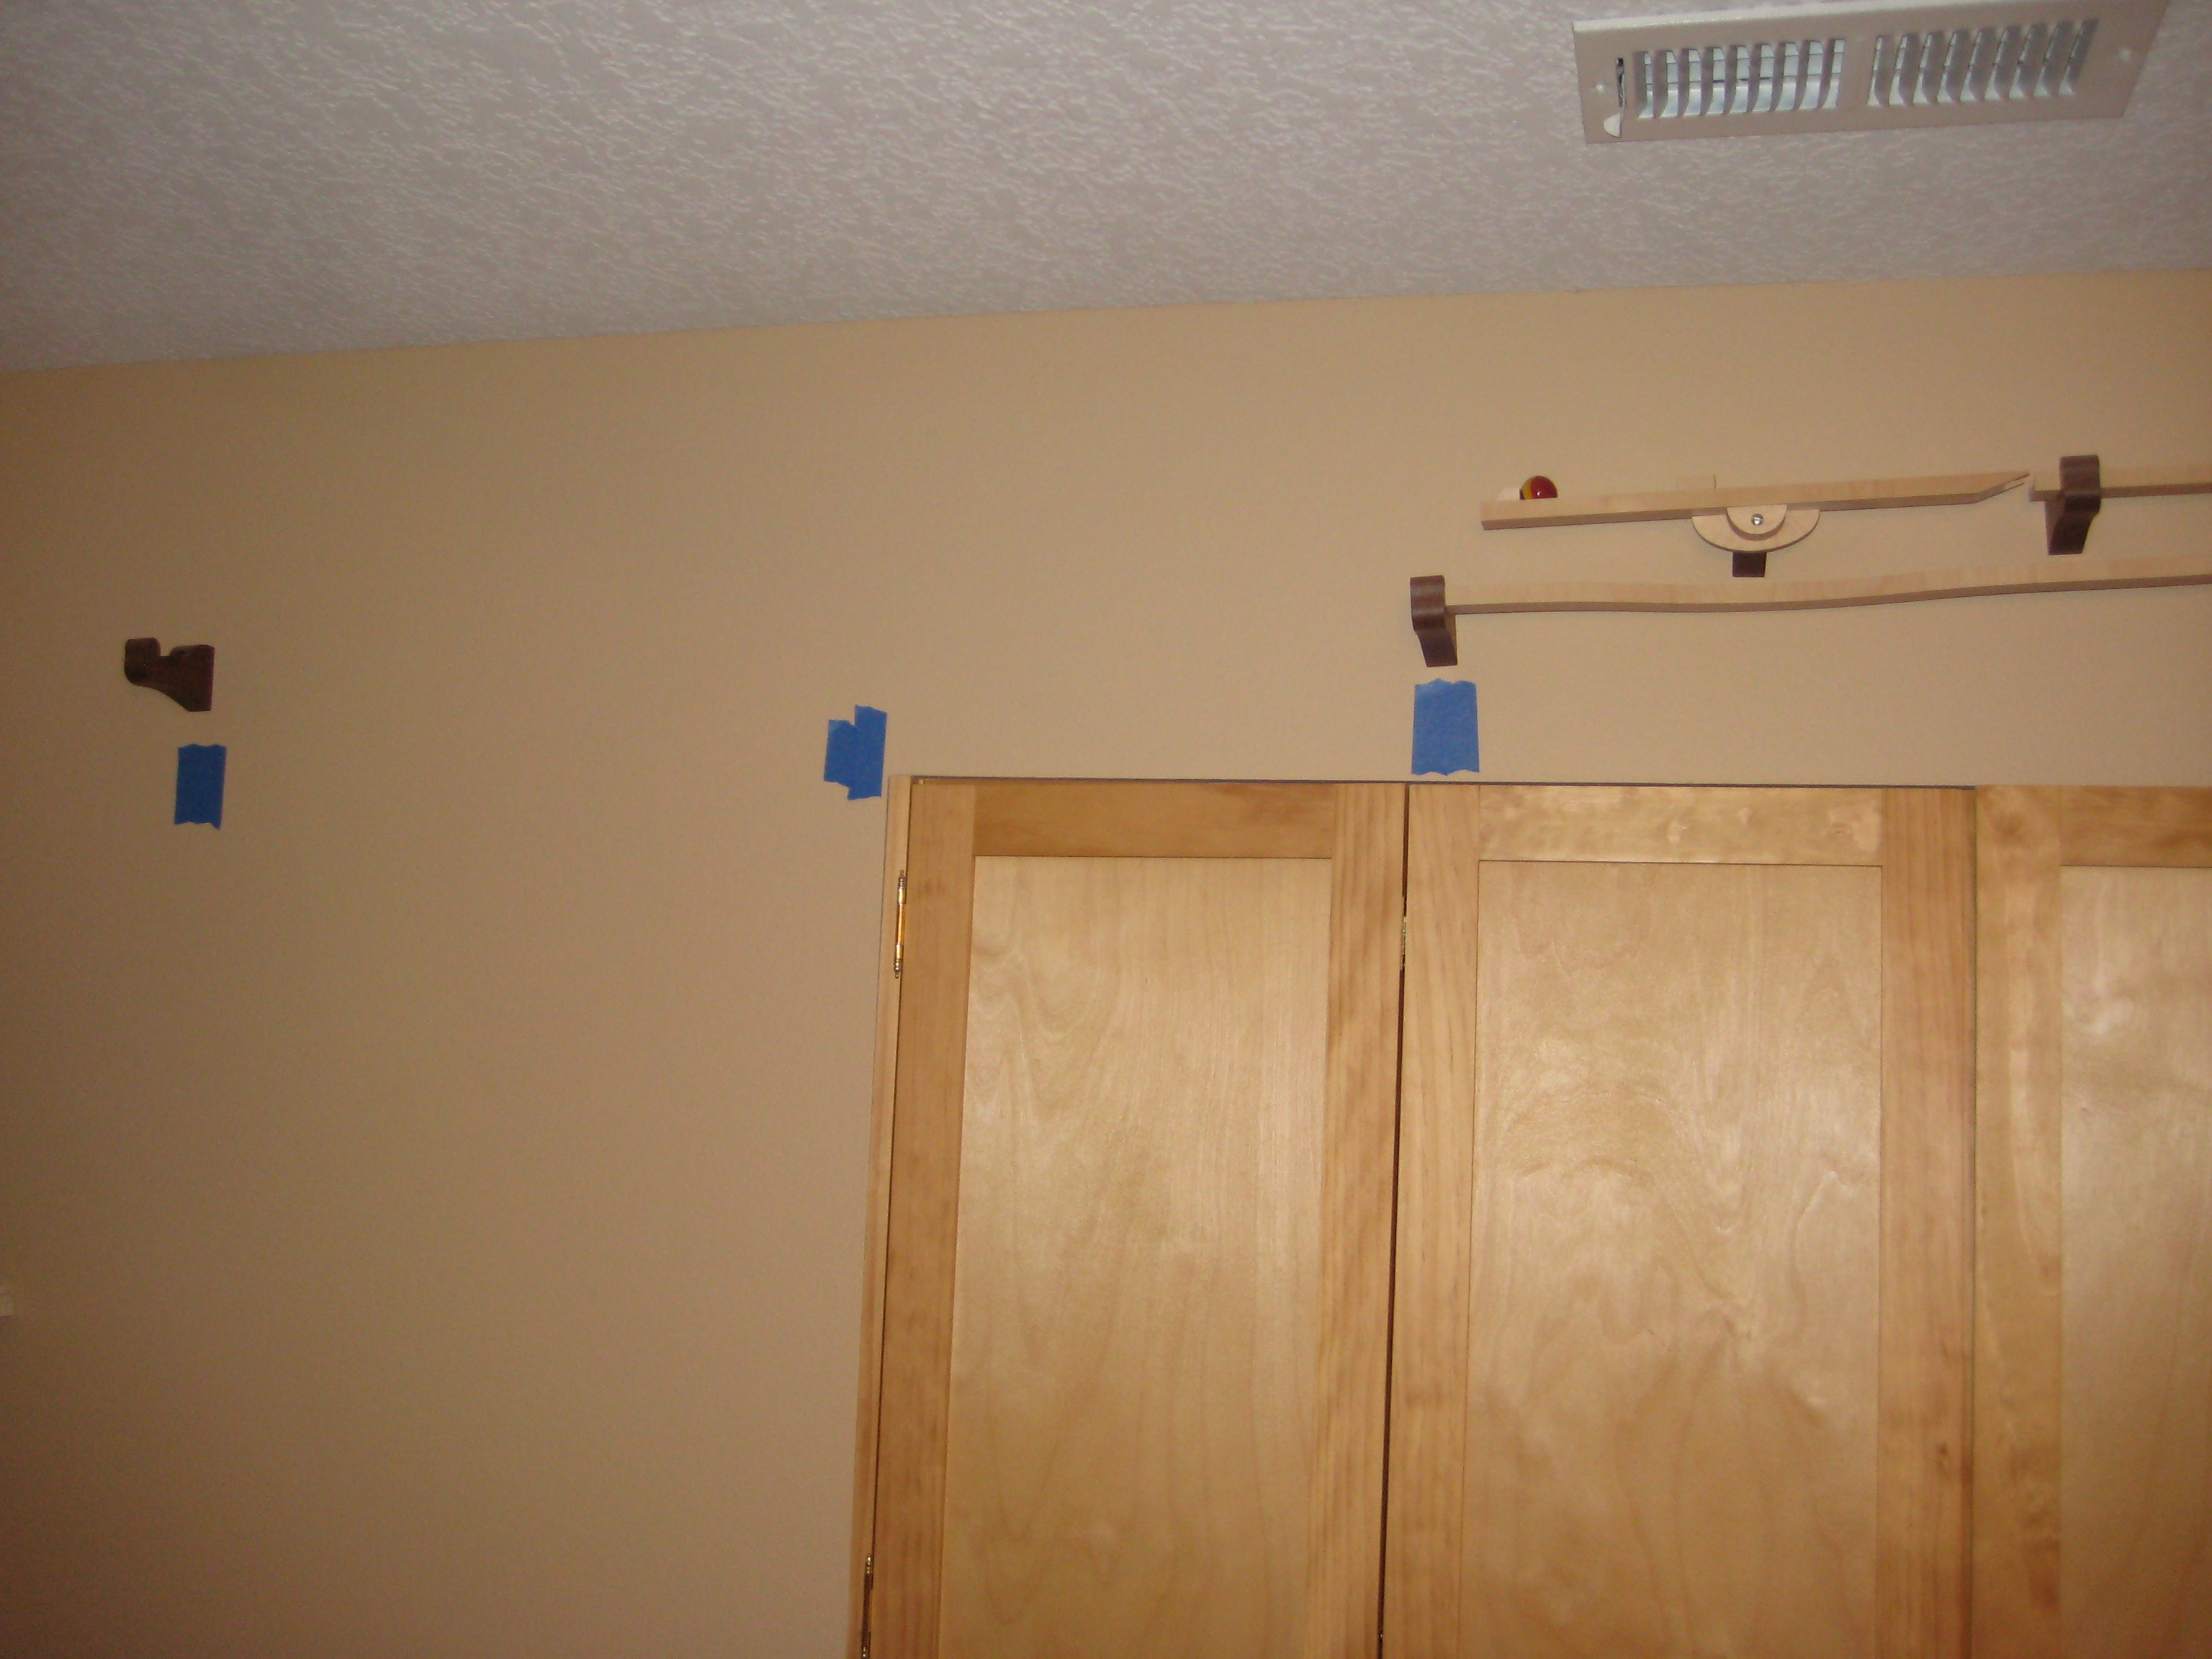 Picture of Install the Lifting Devices and Add Track and Elements